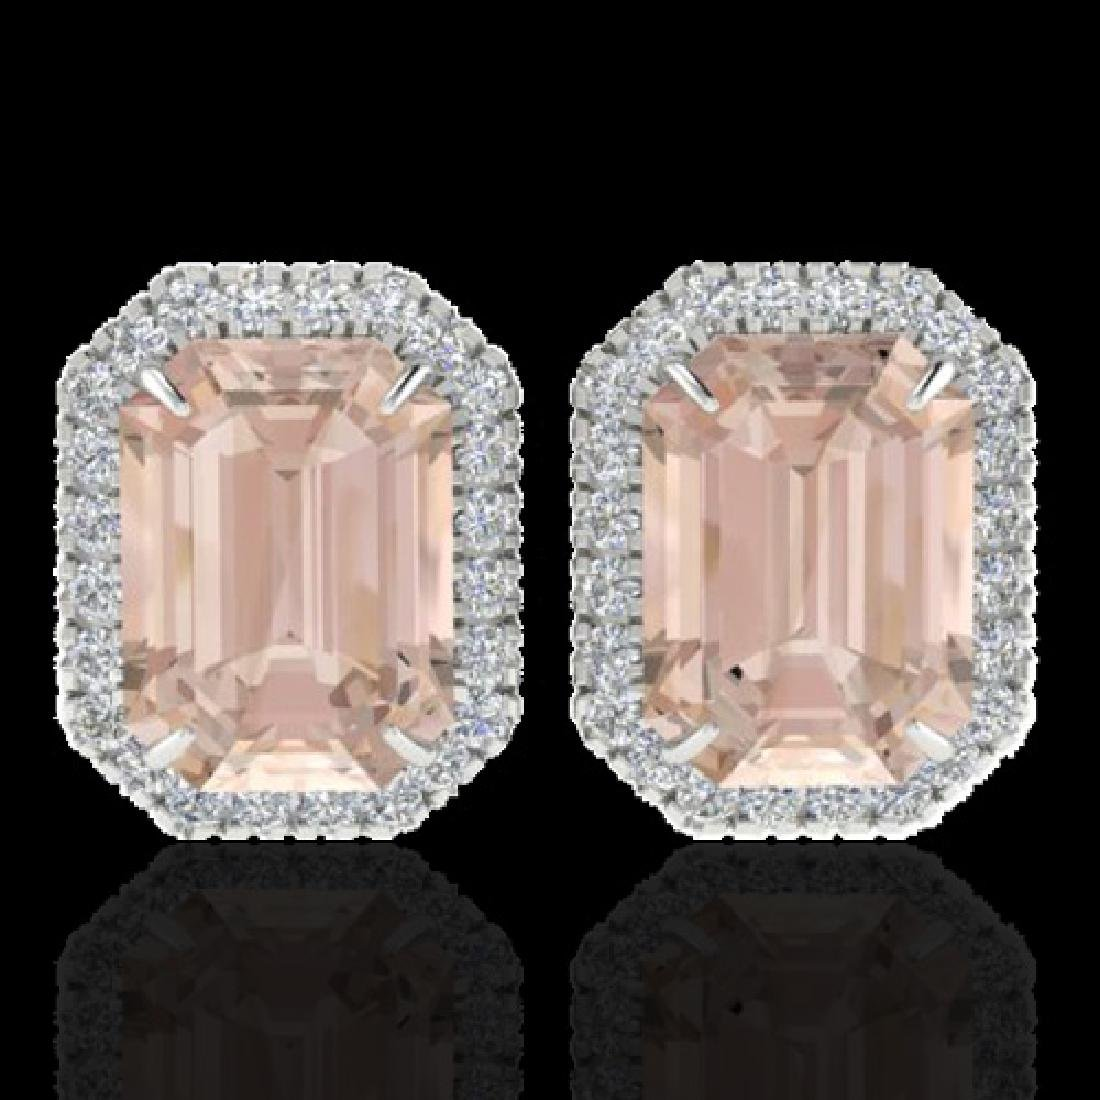 8.40 CTW Morganite & Micro Pave VS/SI Diamond Halo